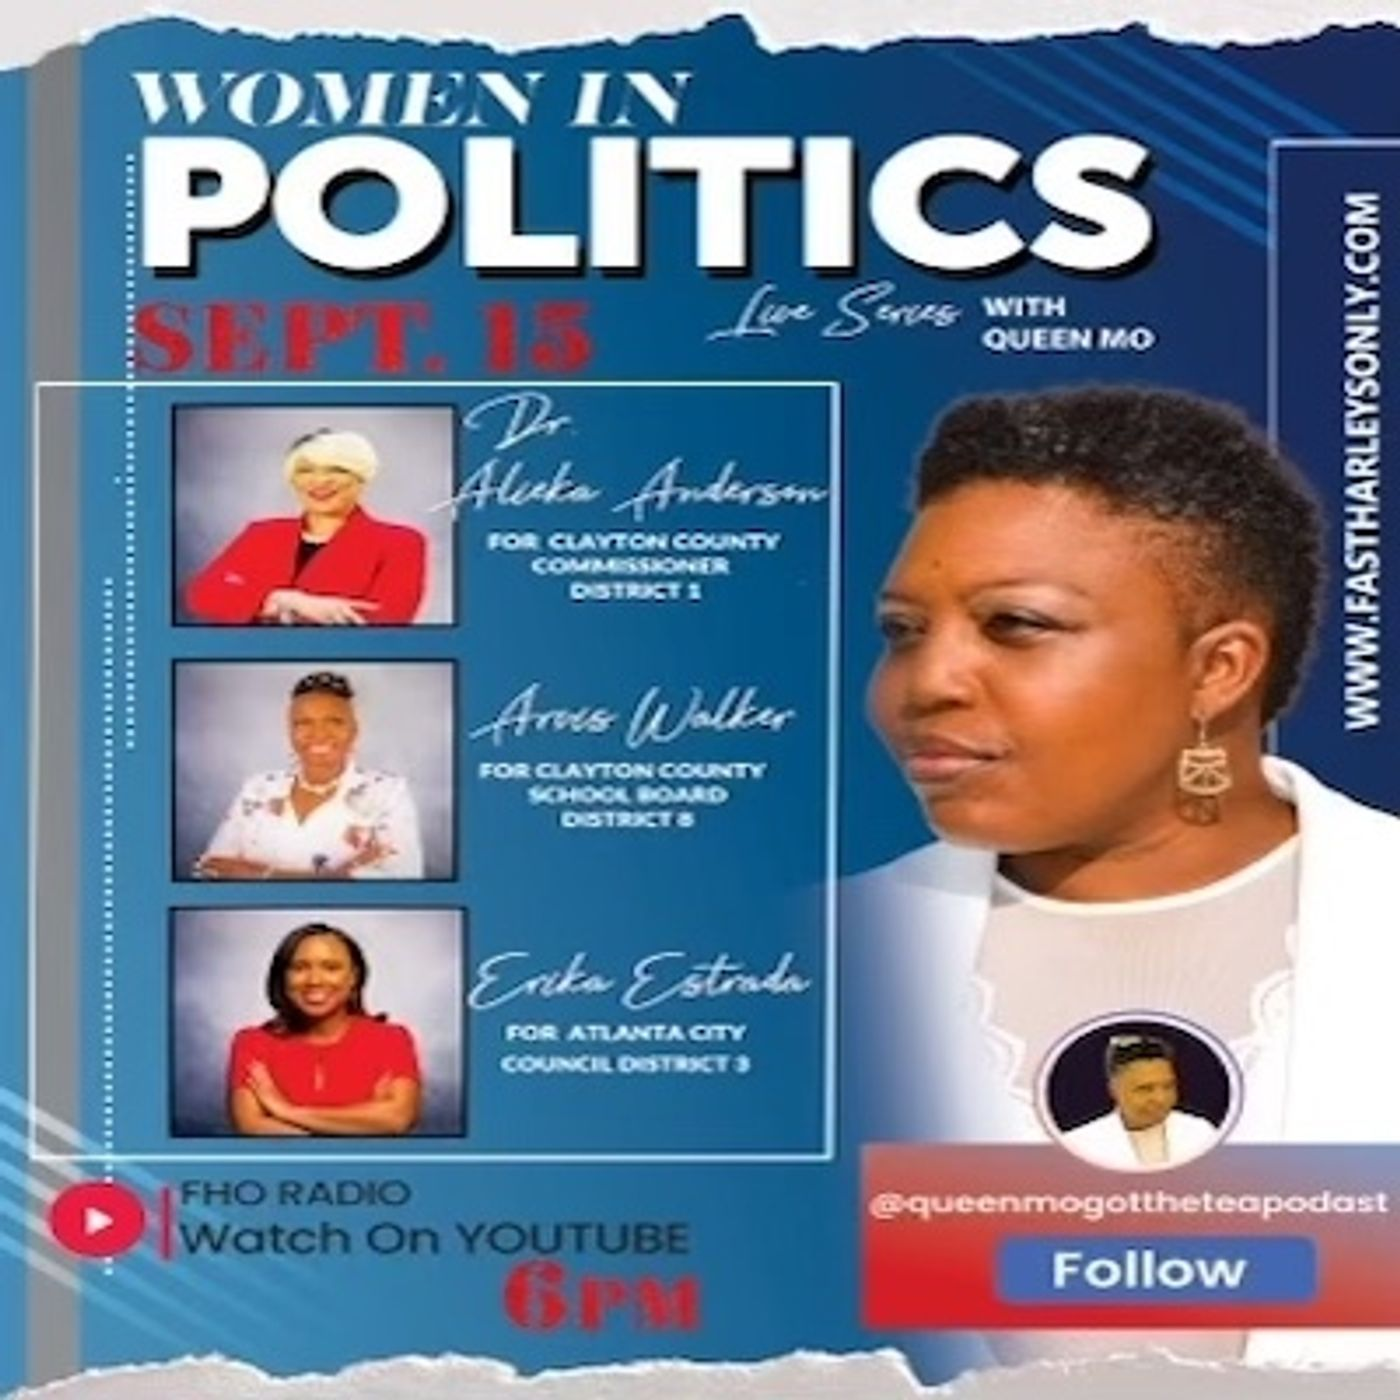 MO SITS DOWN WITH DR ALIEKA ANDERSON